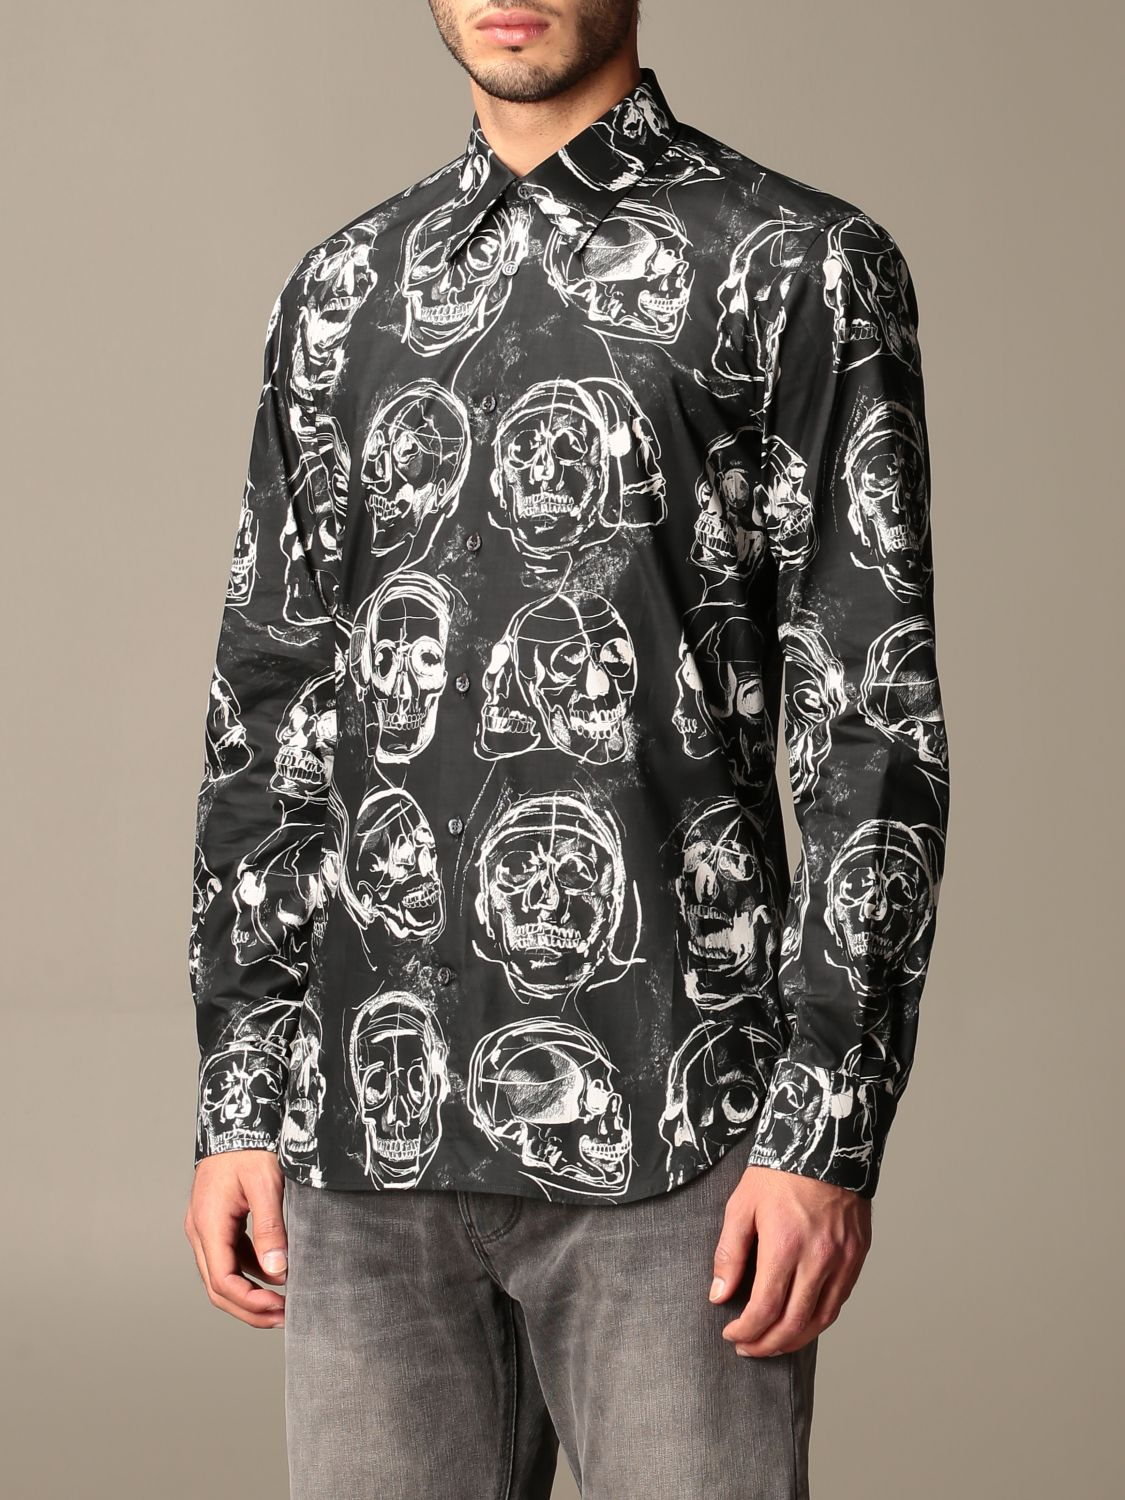 Shirt Alexander Mcqueen: Alexander McQueen shirt with all over skulls black 4